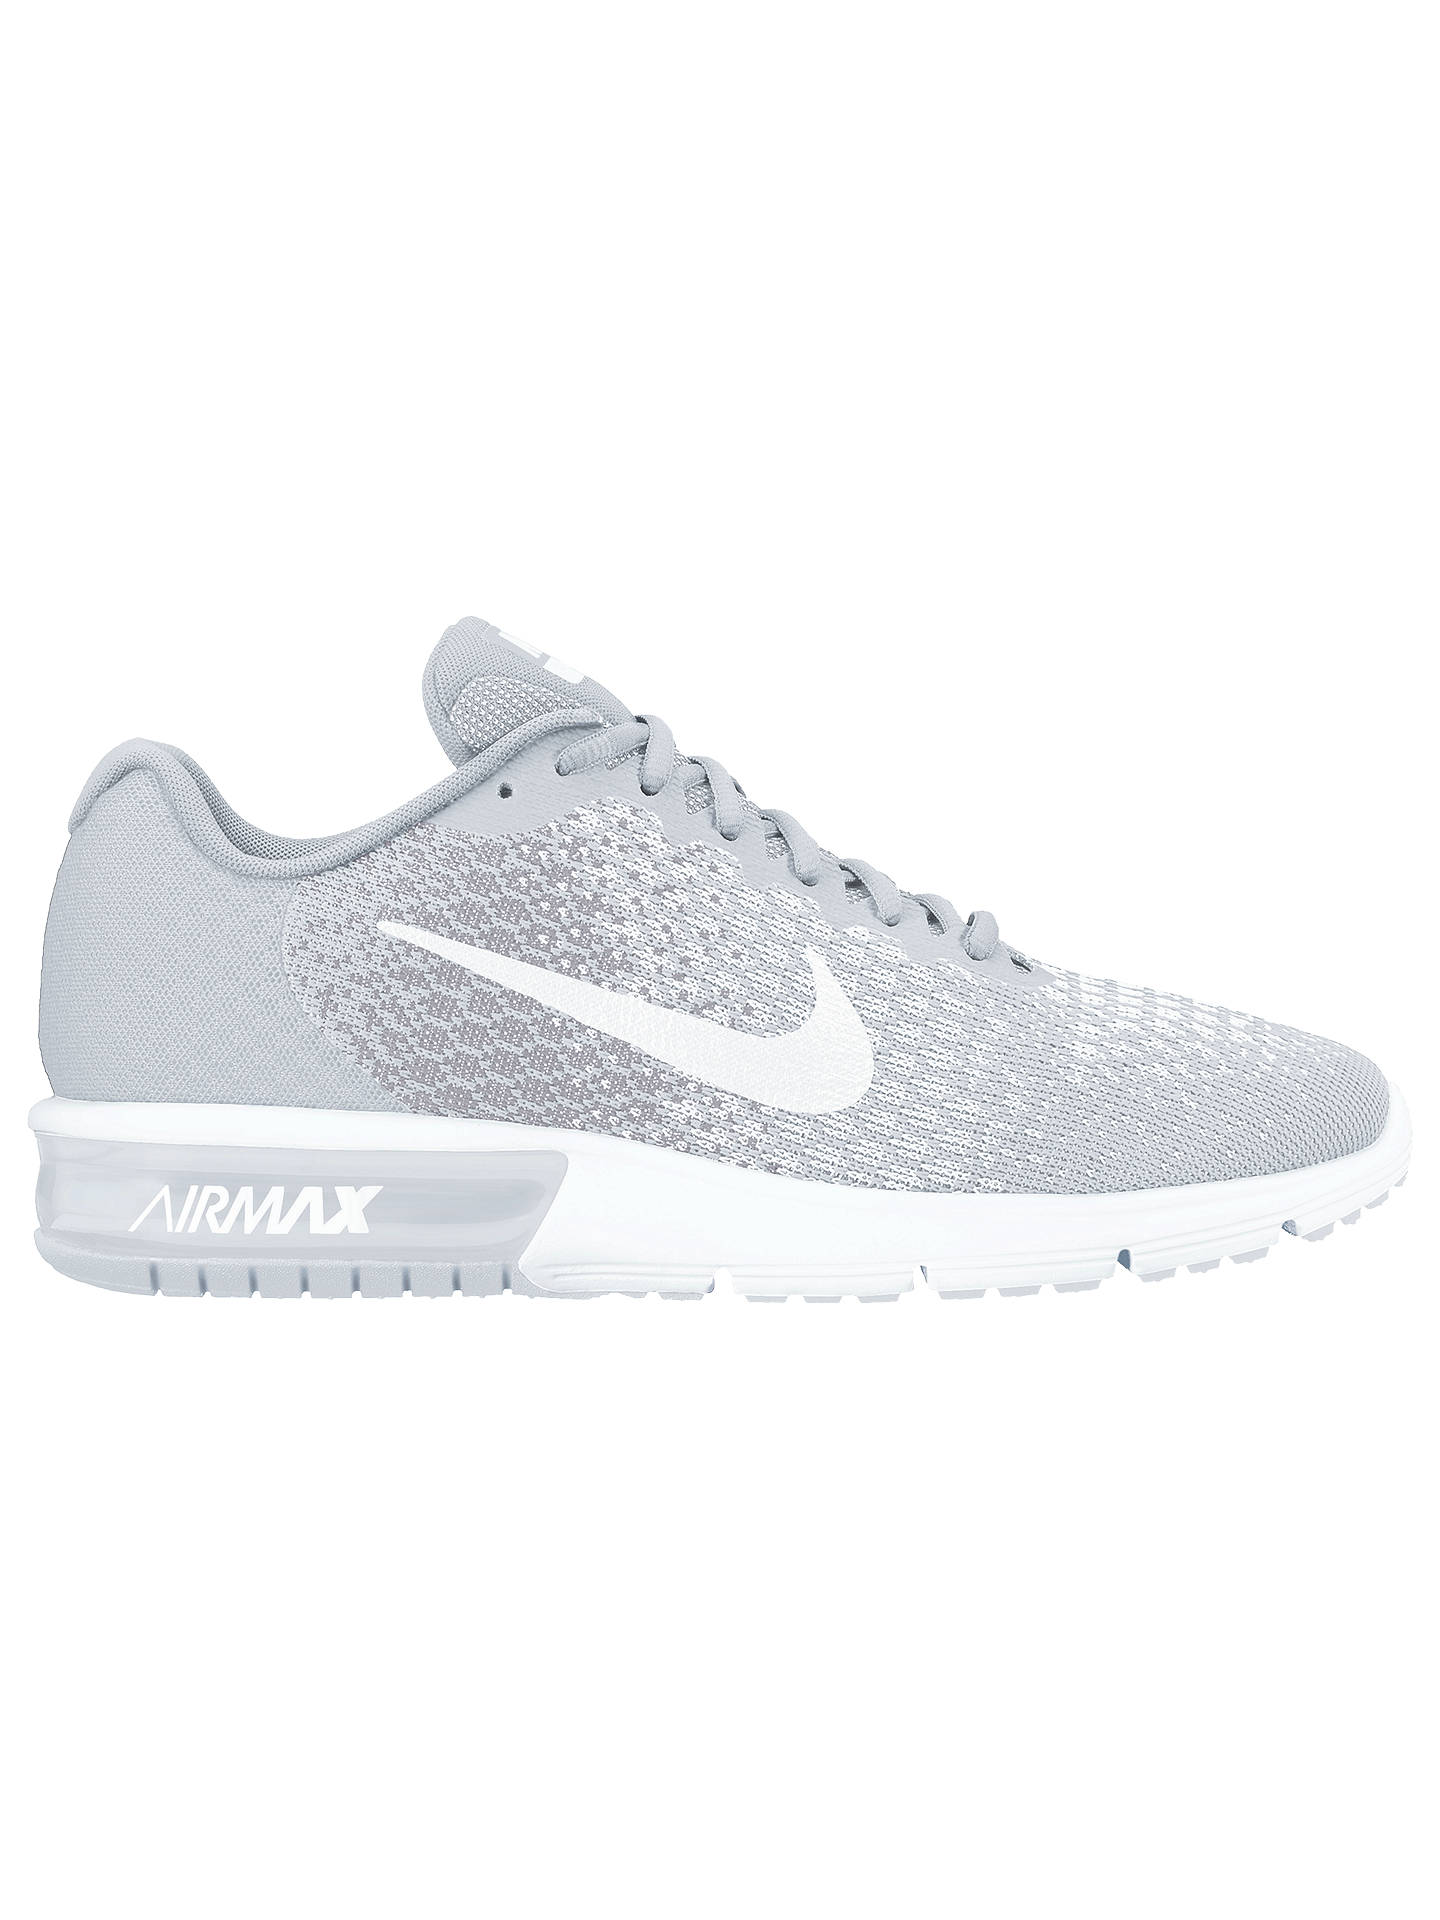 sale retailer 3ef54 a226a Buy Nike Air Max Sequent 2 Women s Running Shoes, White Grey, 4 Online ...